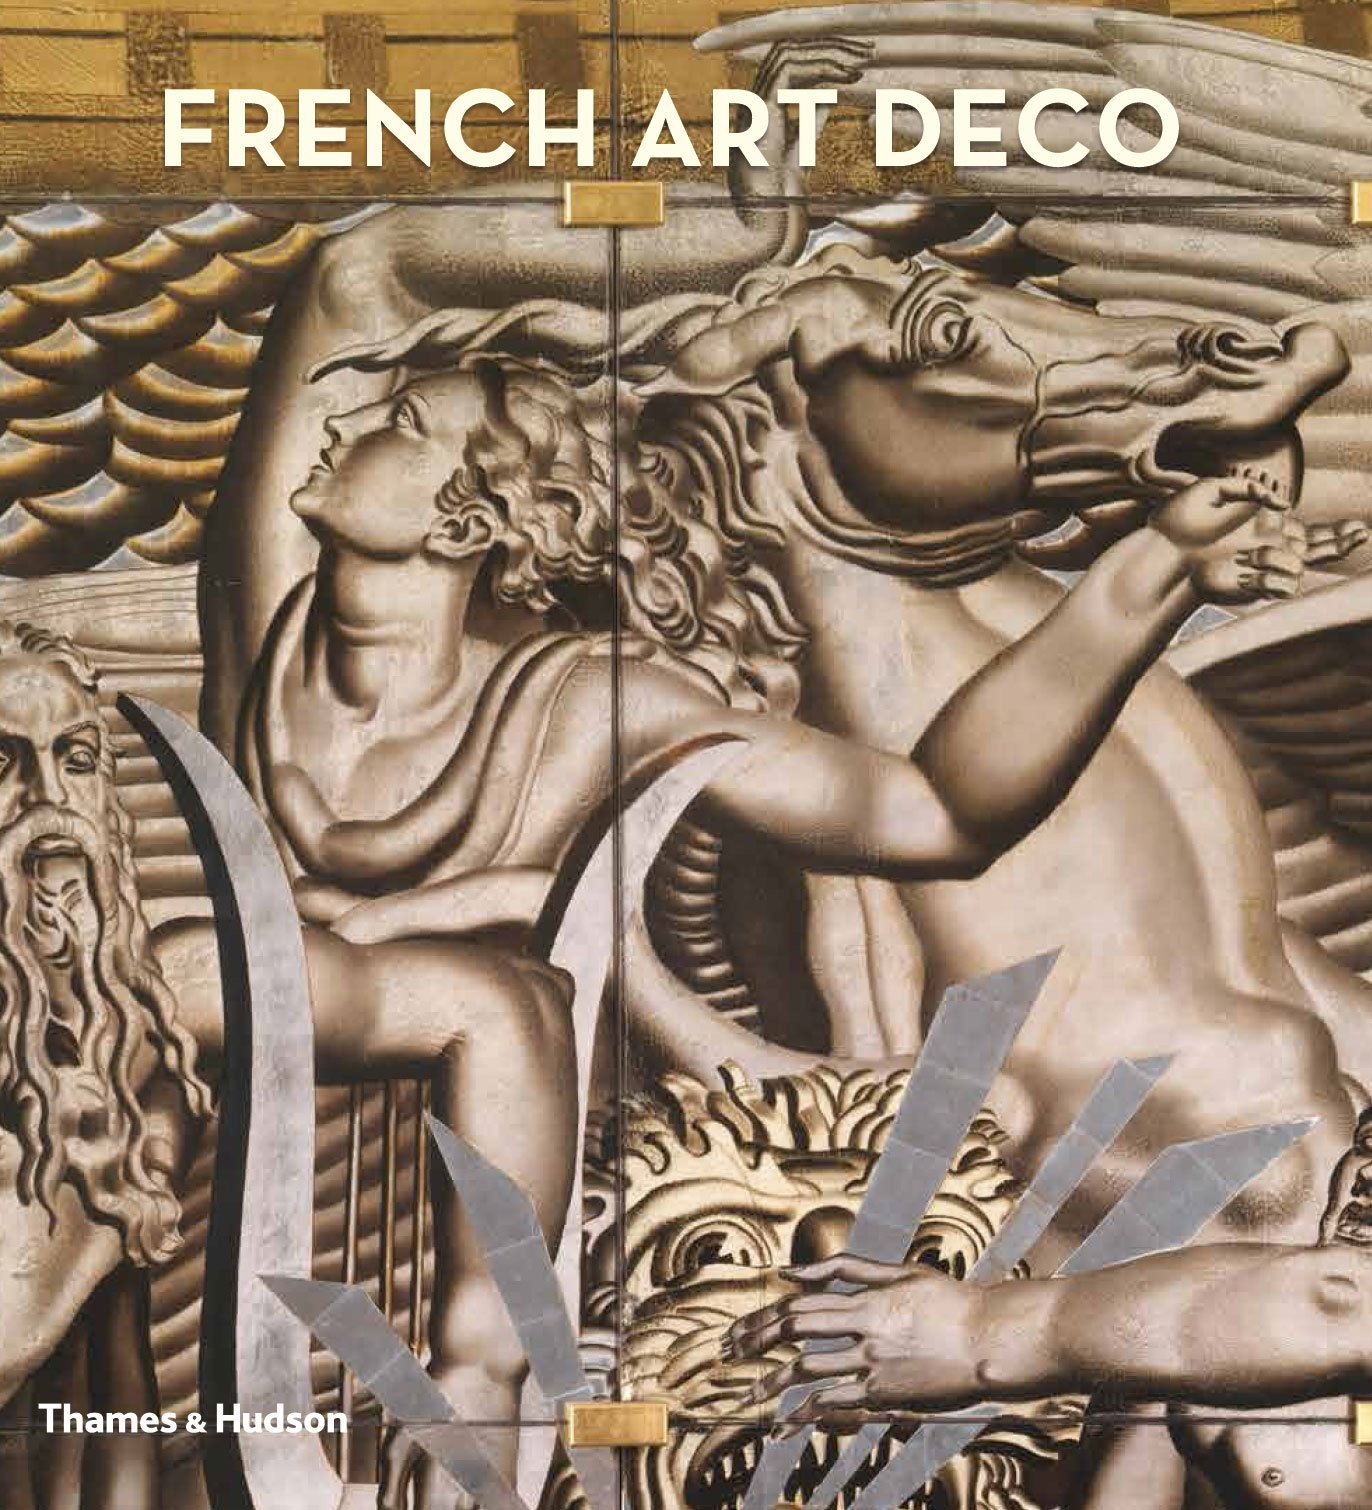 French Art Deco: Amazon.co.uk: Jared Goss: 9780500517536: Books